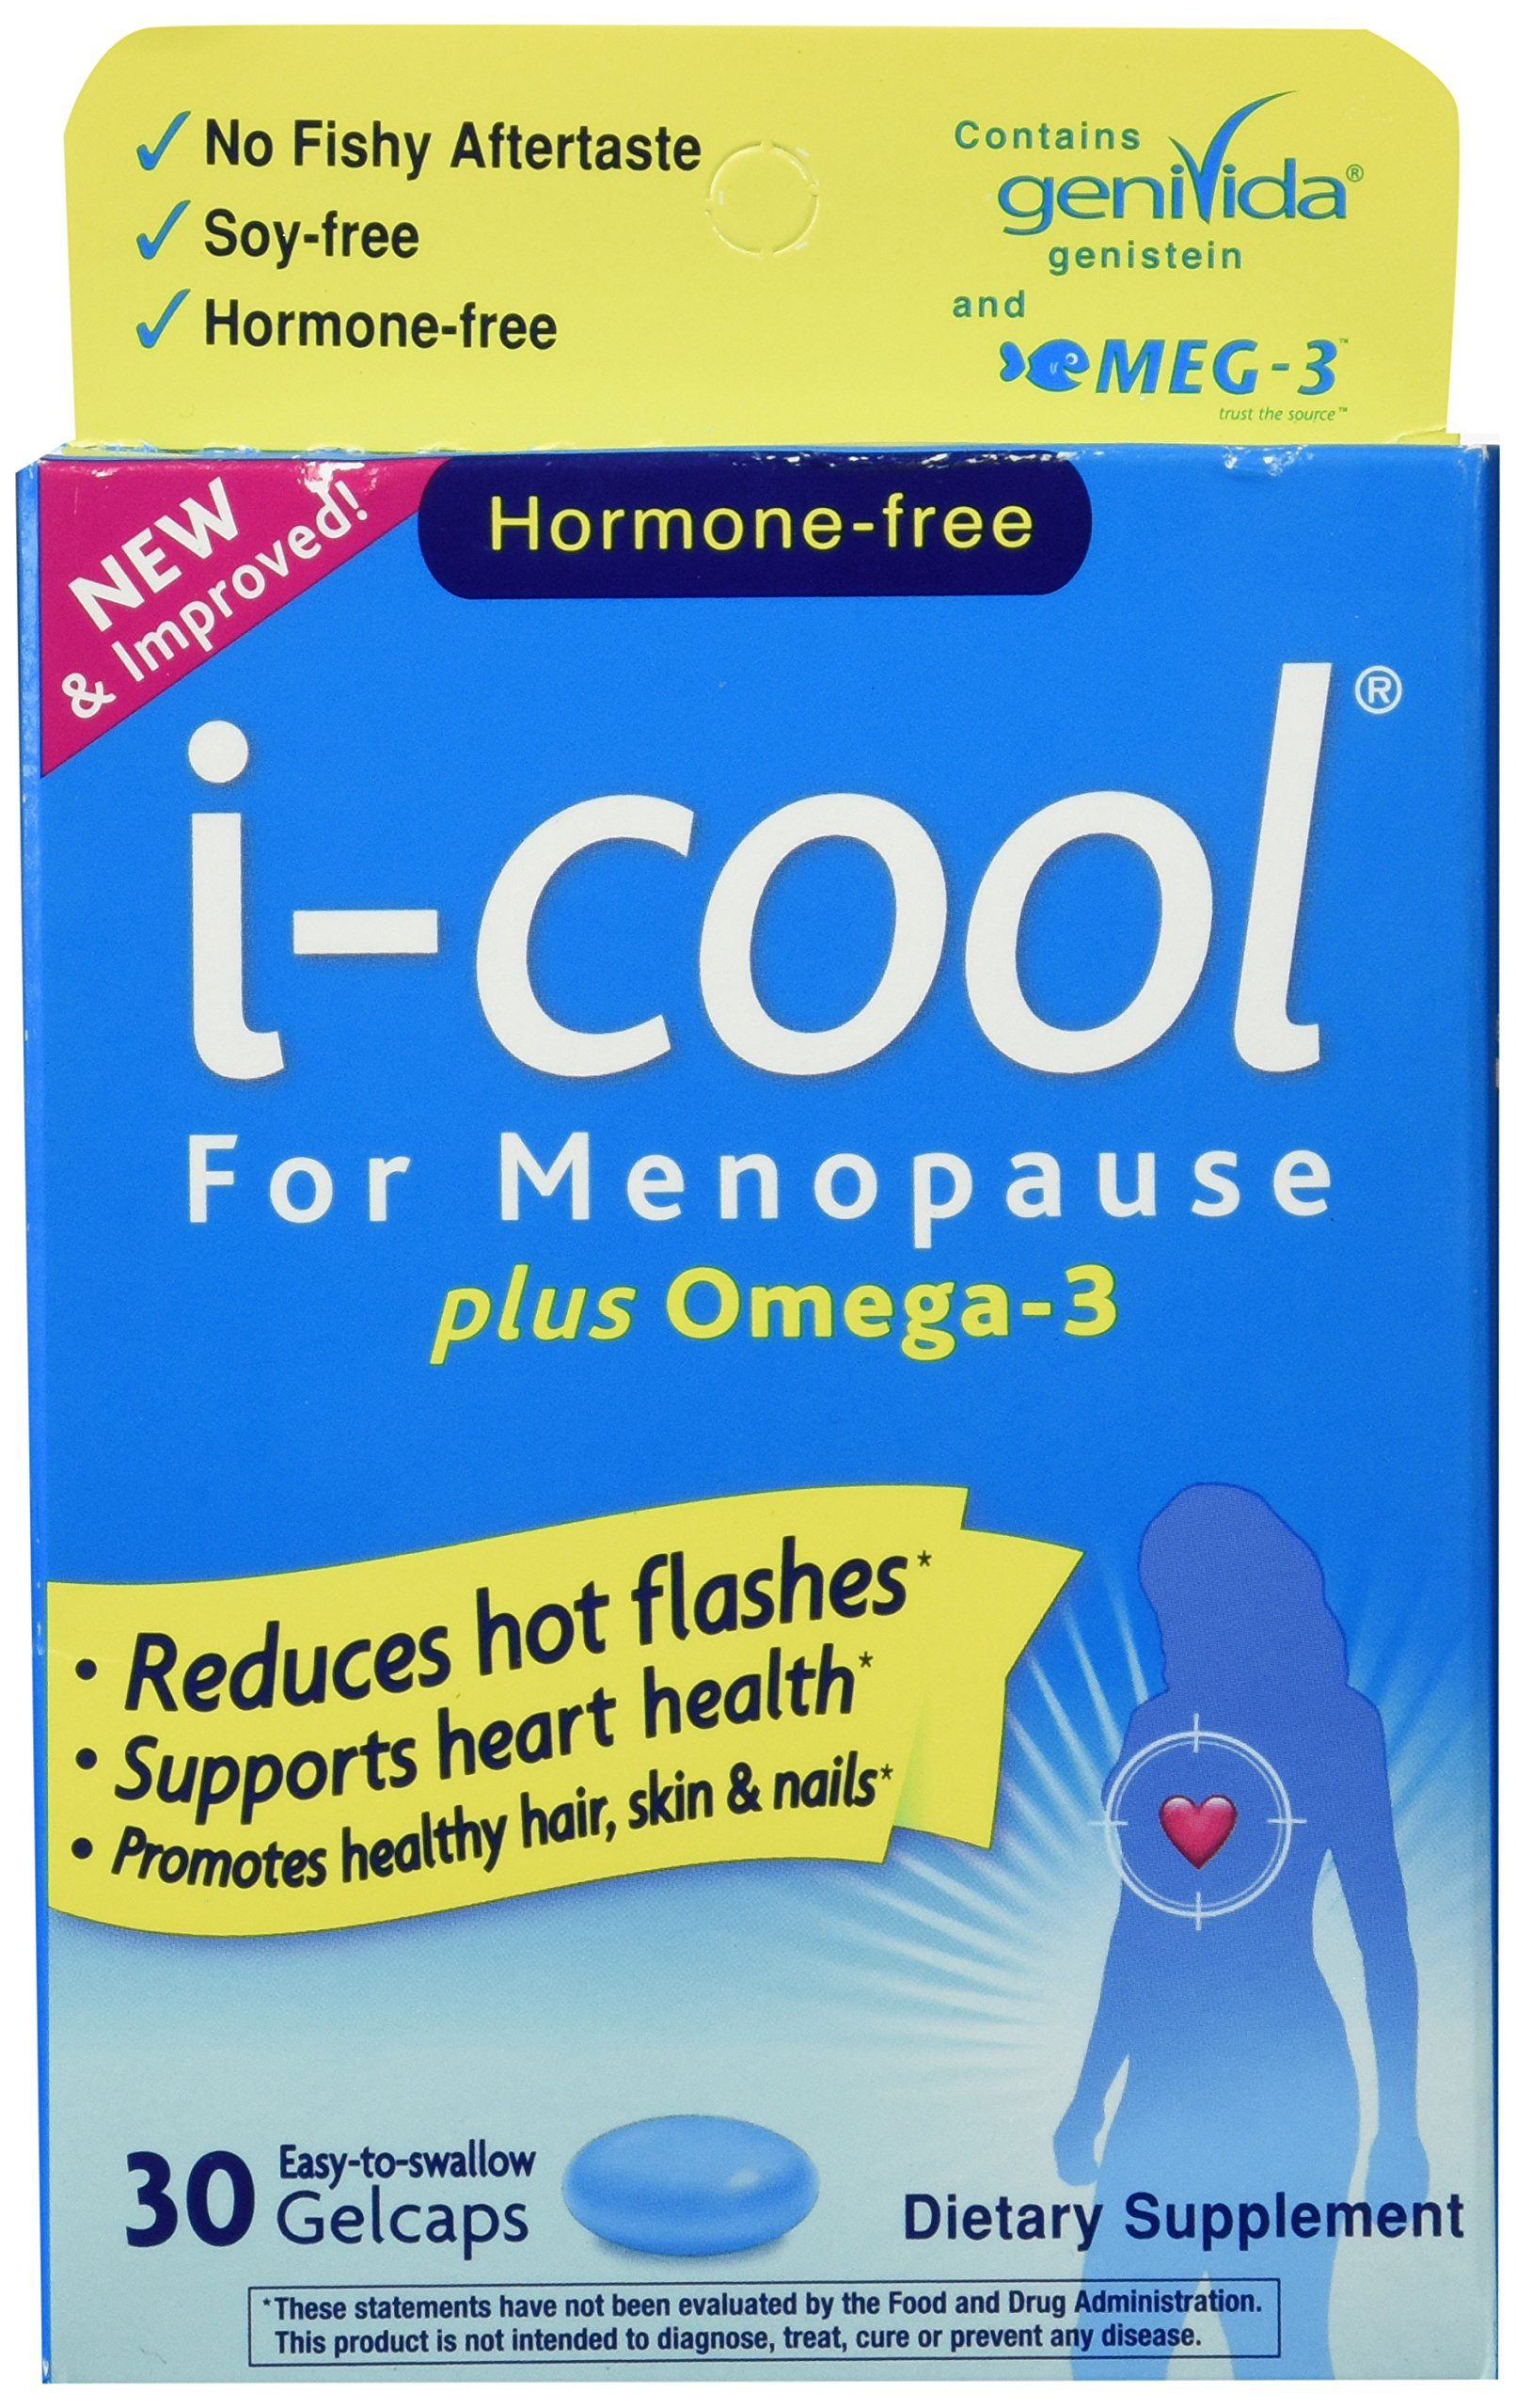 i-cool For Menopause Plus Omega-3, One Per Day, Multi-Symptom Menopause Relief: Genistein, Vitamin E, Biotin, Fish Oil, 30 Count